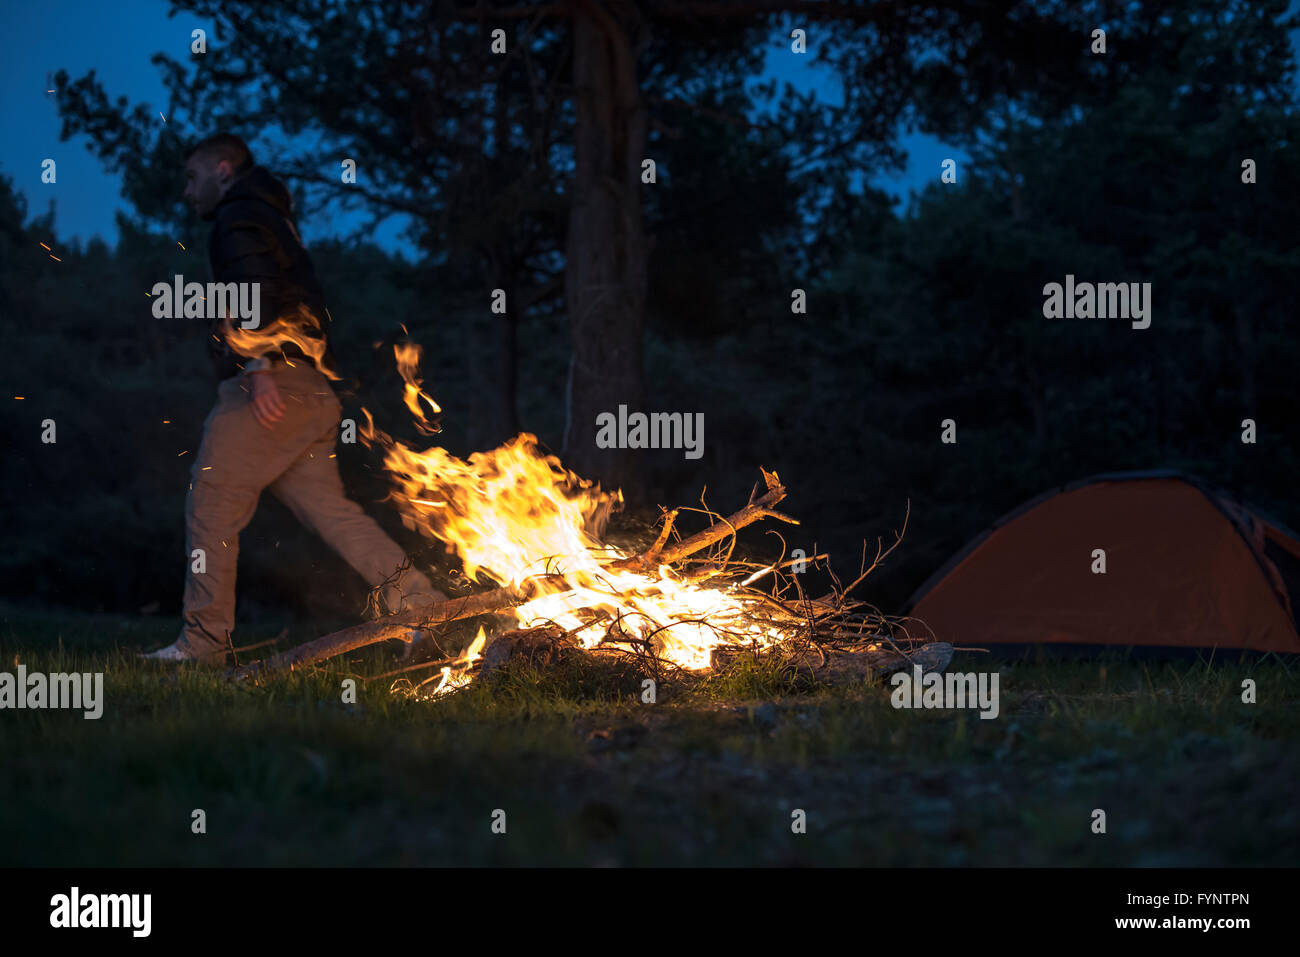 man lights a fire in the fireplace in nature at night stock photo